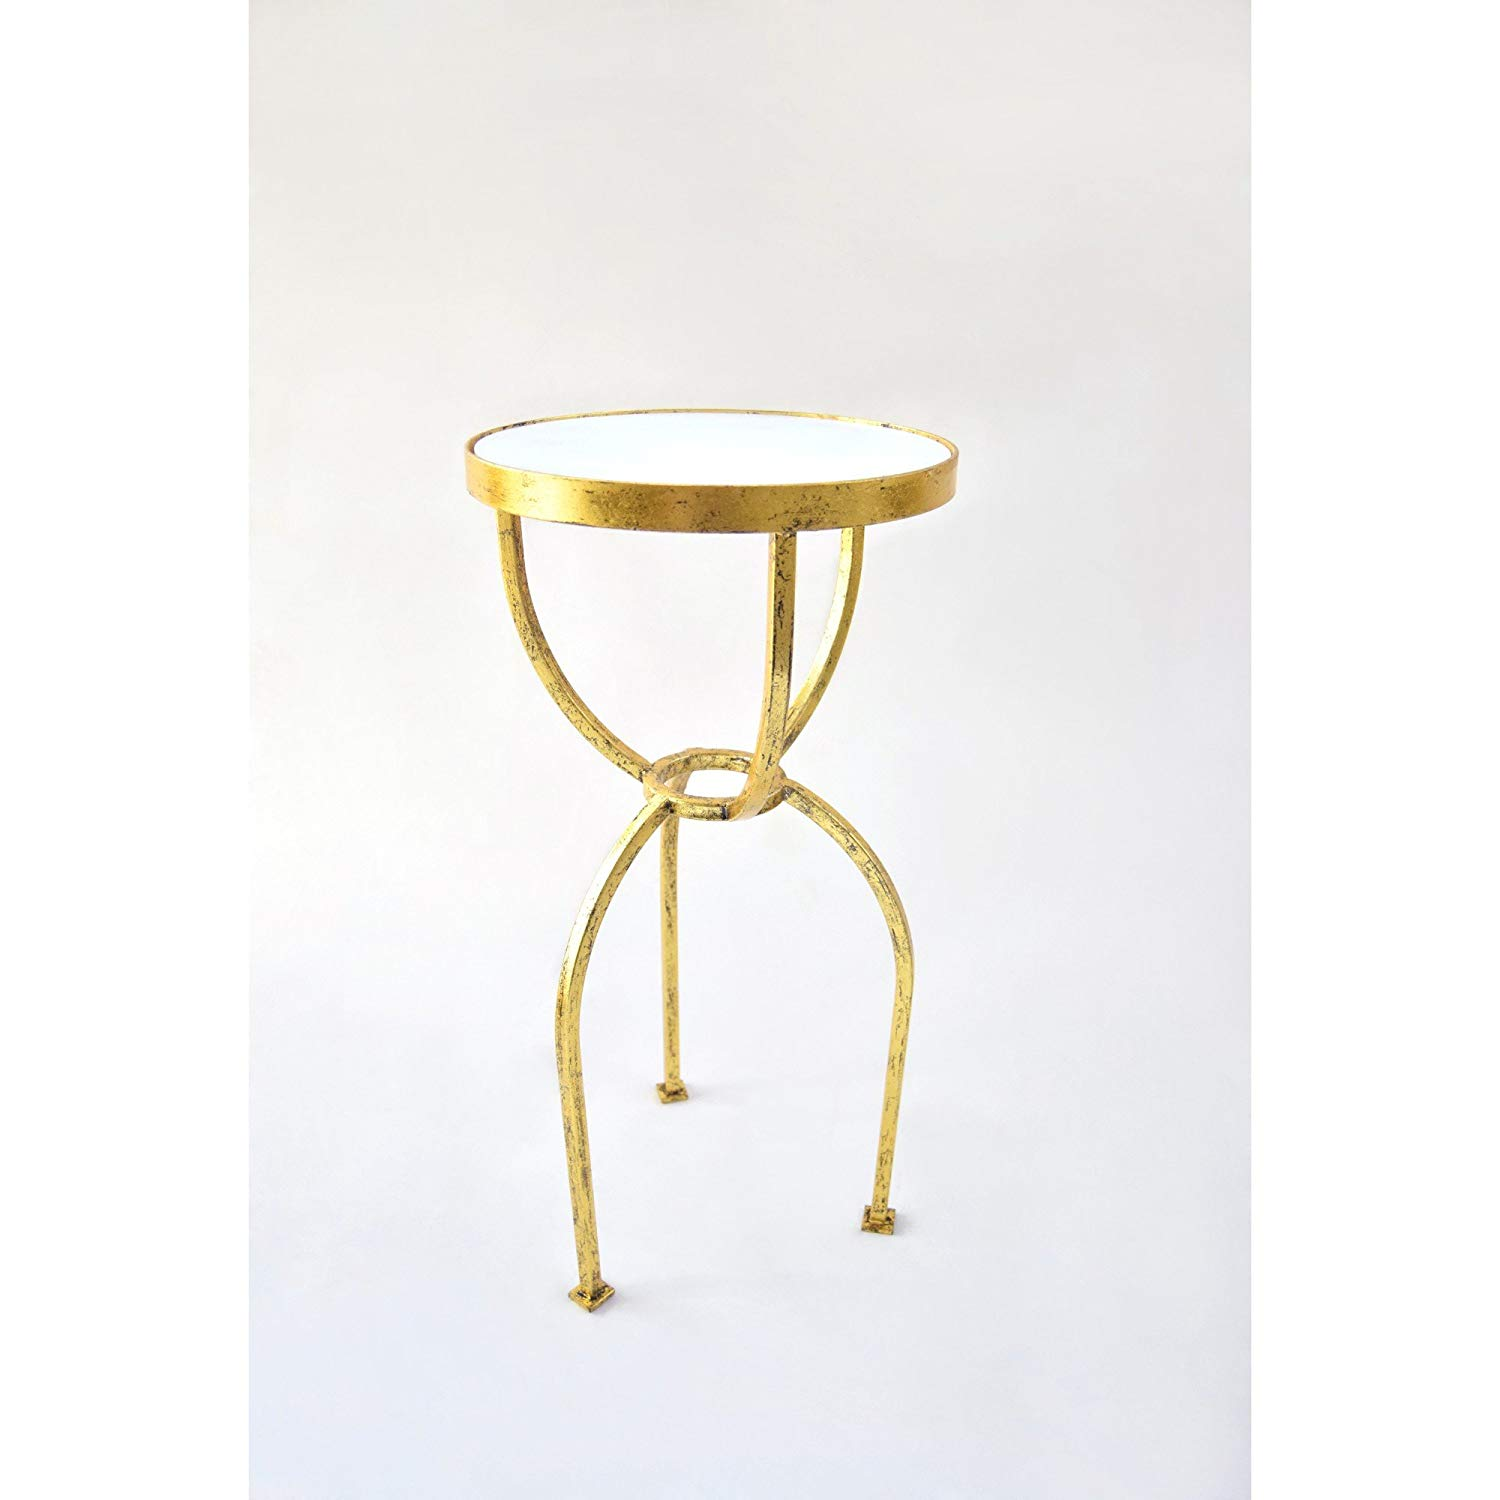 knox and harrison three legged square tube occasional glass accent table gold leaf with white granite top kitchen dining macys recliners swedish reproduction furniture overbed